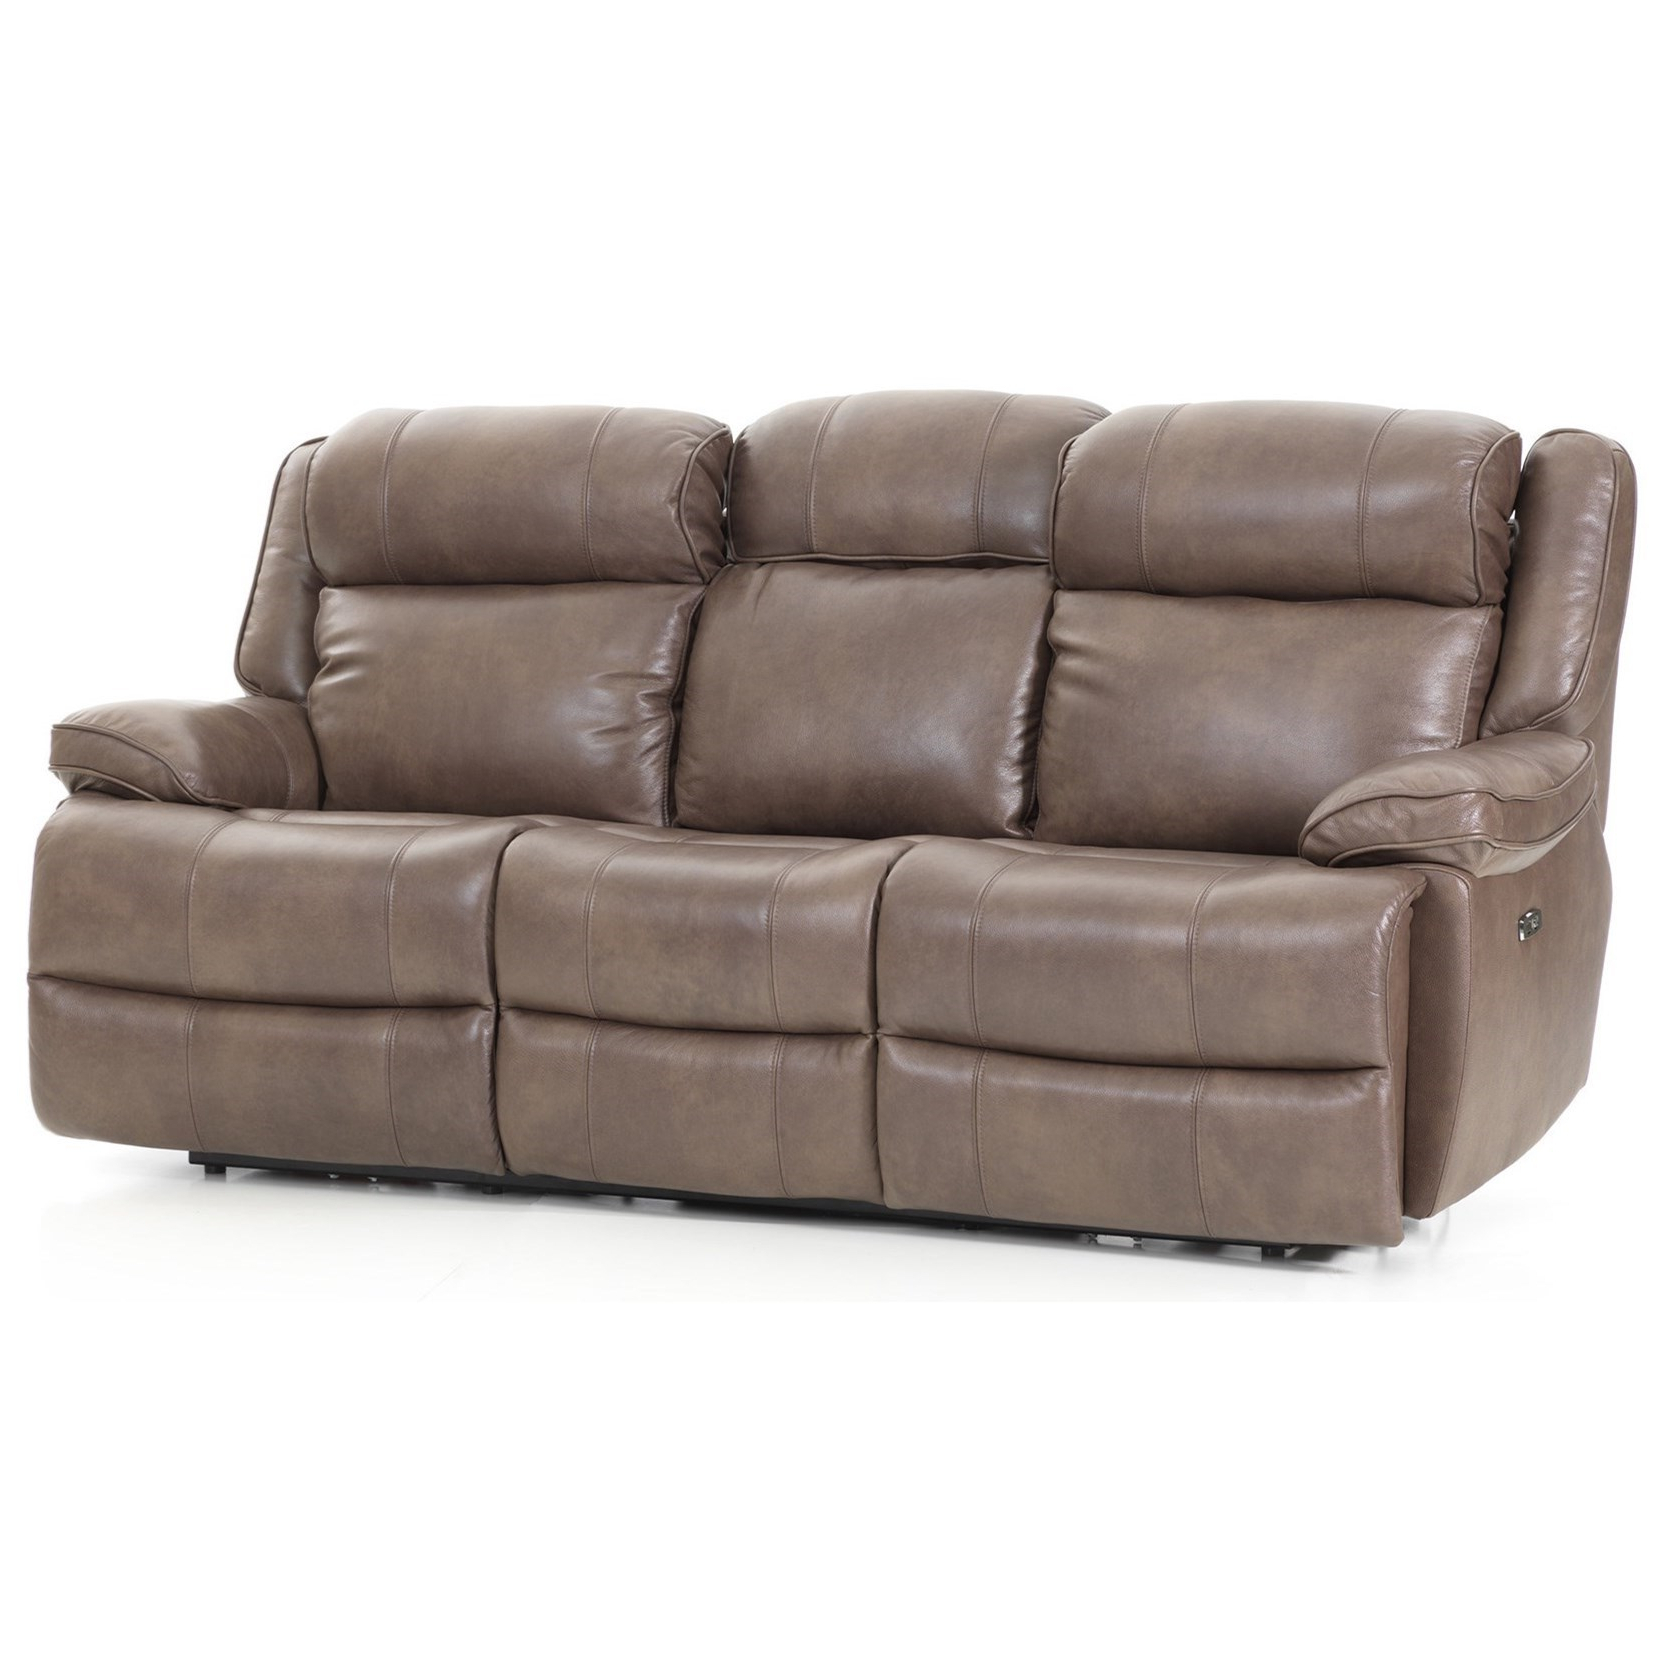 Dual Power Reclining Sofas For Most Up To Date Avalon Casual Dual Power Reclining Sofa With Power (View 18 of 20)